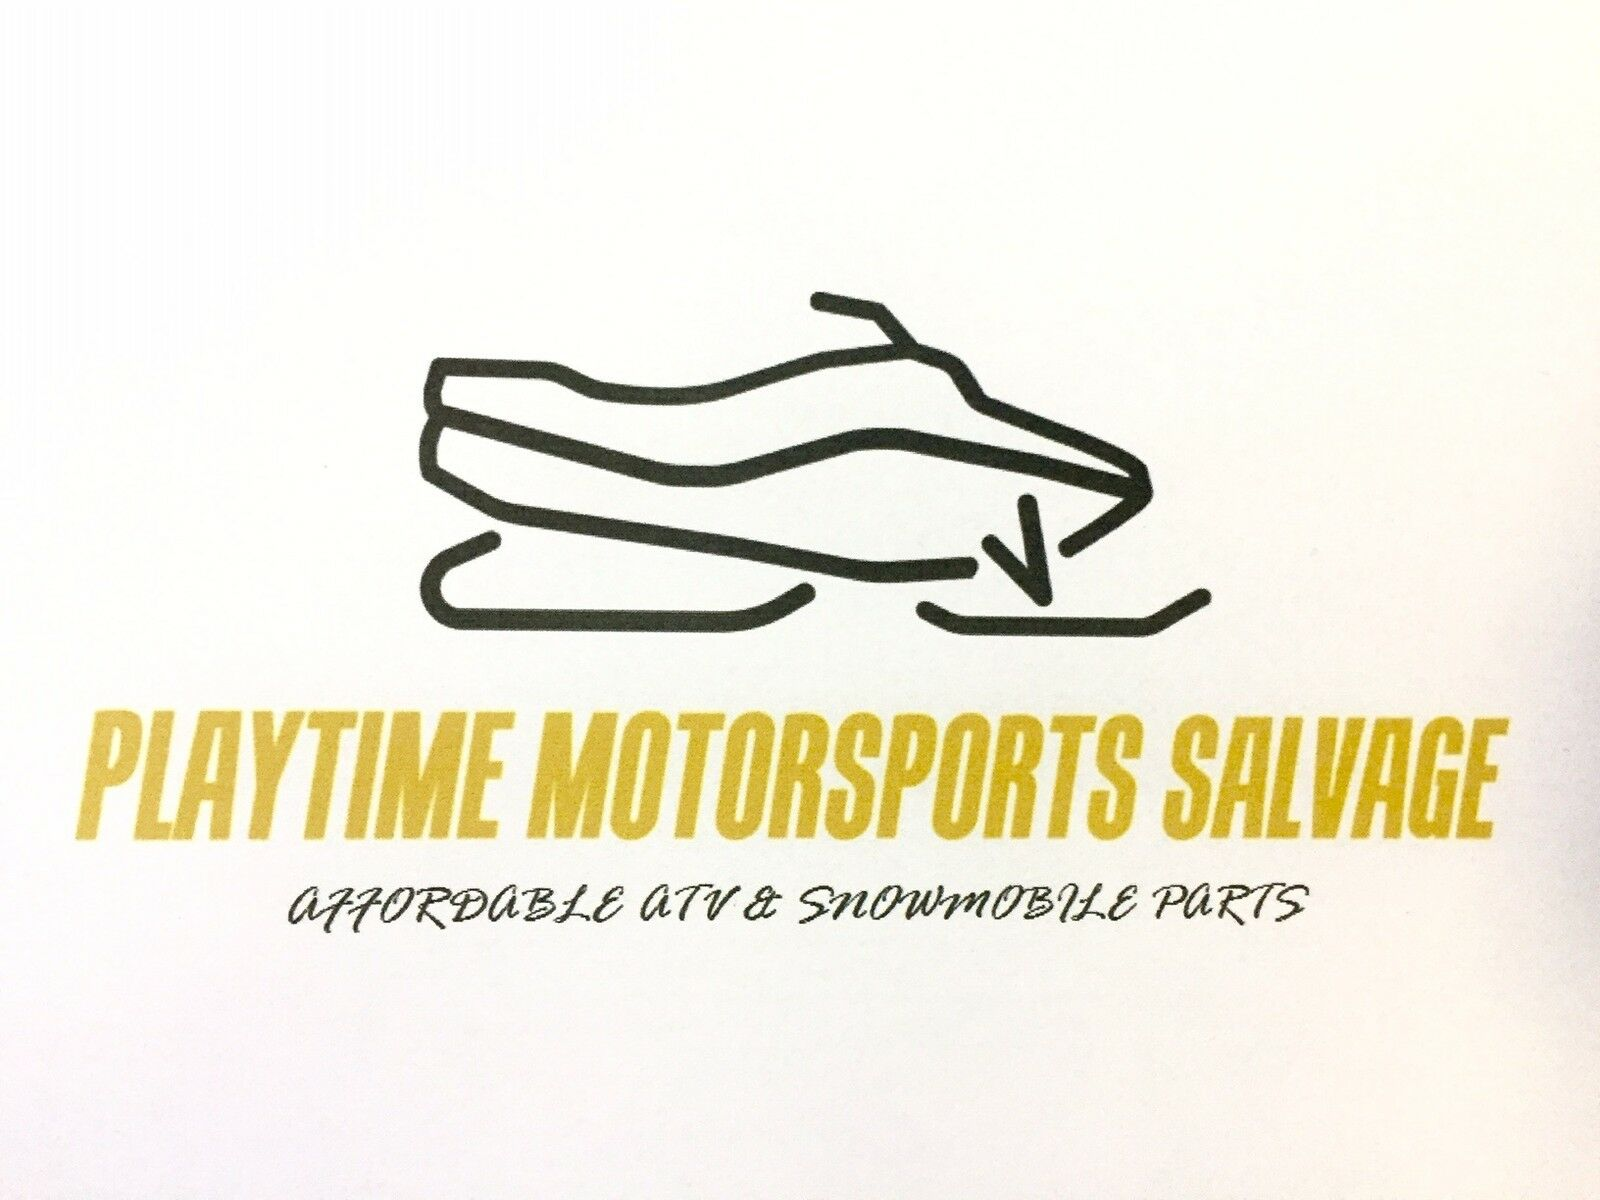 playtime motorsport salvage